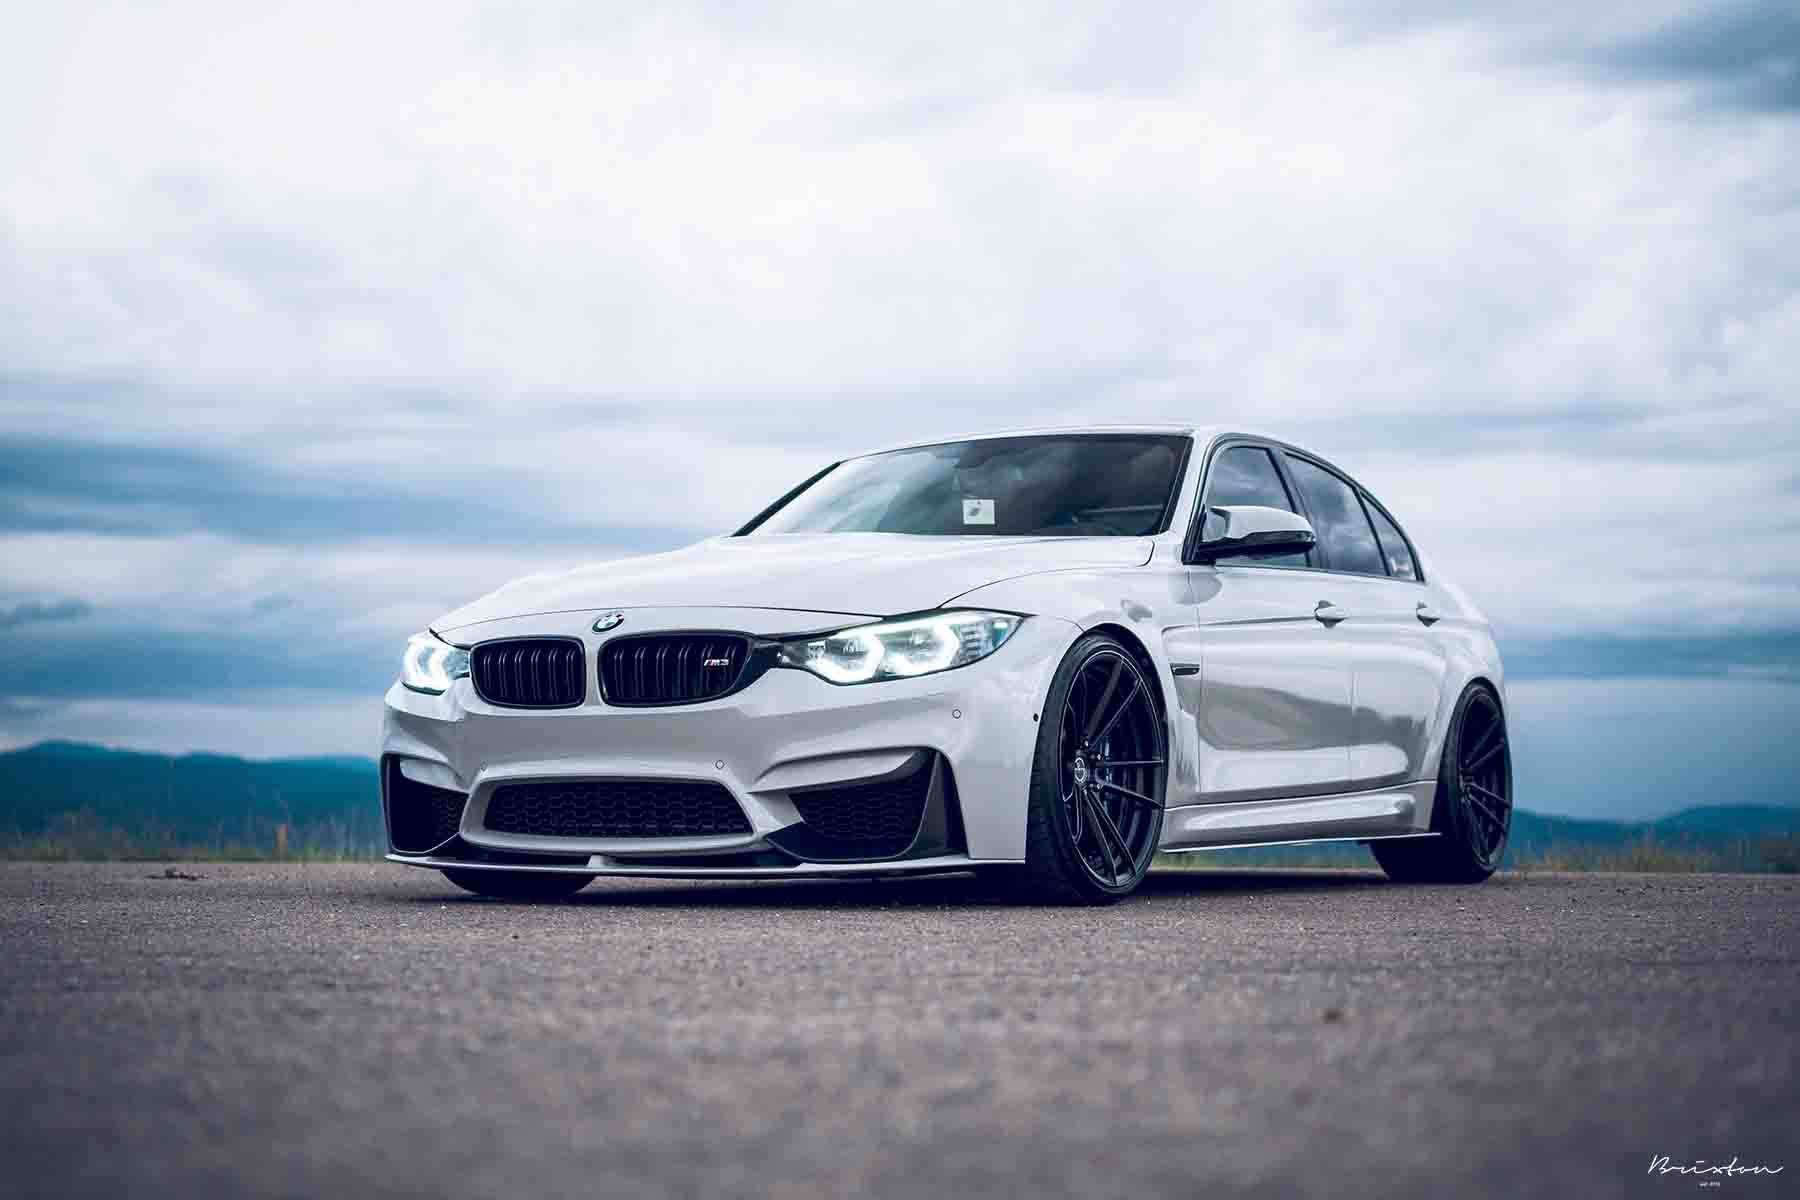 images-products-1-2188-232974476-bmw-f80-m3-brixton-forged-m51.jpg